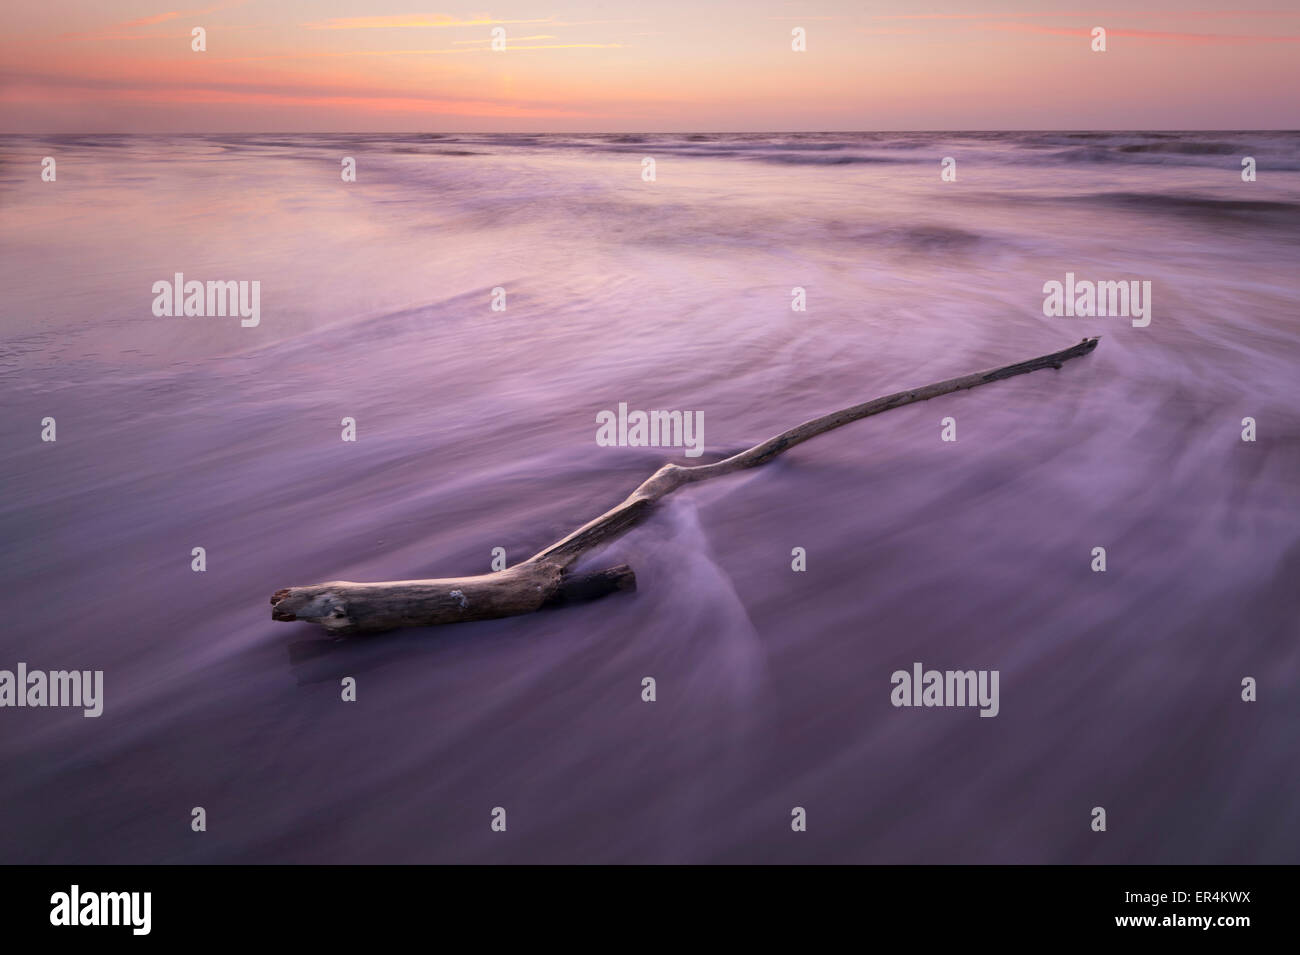 Branch On Beach With Waves Motion Blur - Stock Image